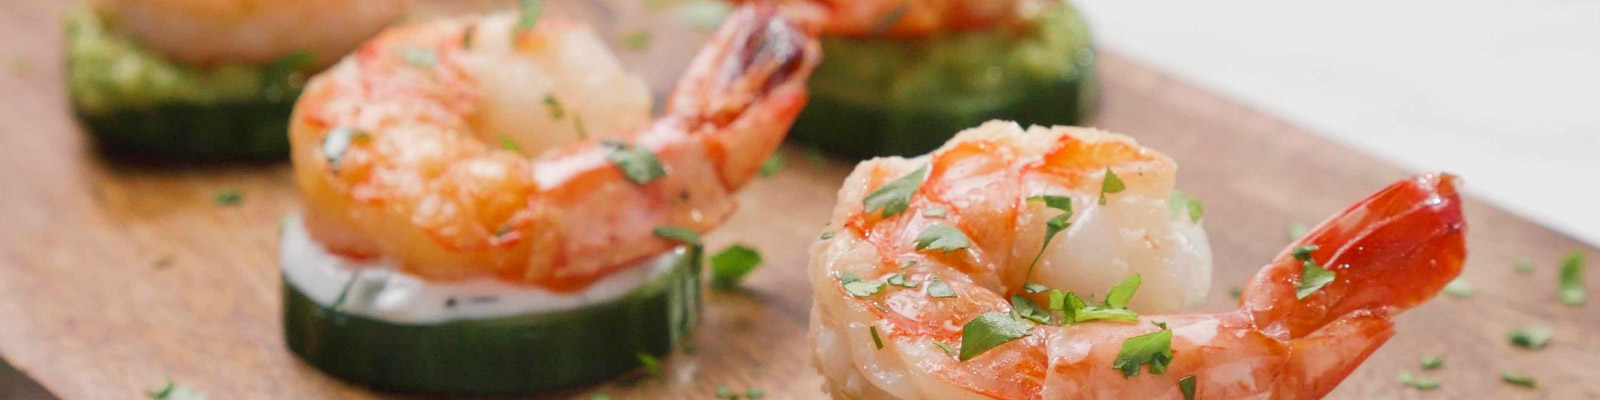 1600x400-Recipe-Prawn-Cucumber-Bites-2.jpg